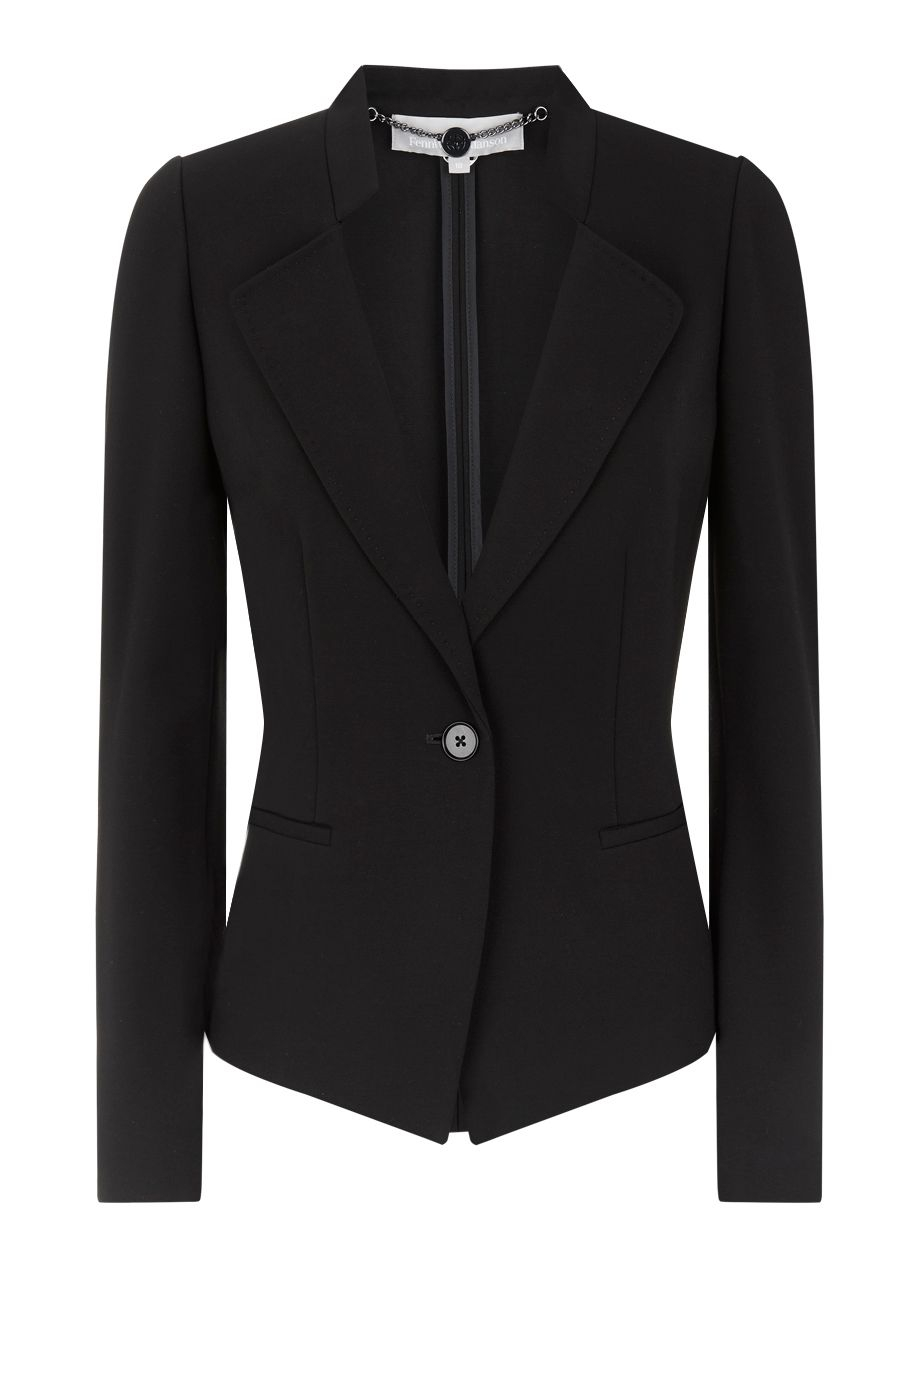 manson black single women Find fenn wright manson for women at up to 90% of retail price discover over 25,000 brands of hugely discounted clothes, handbags, shoes and accessories at thredup.